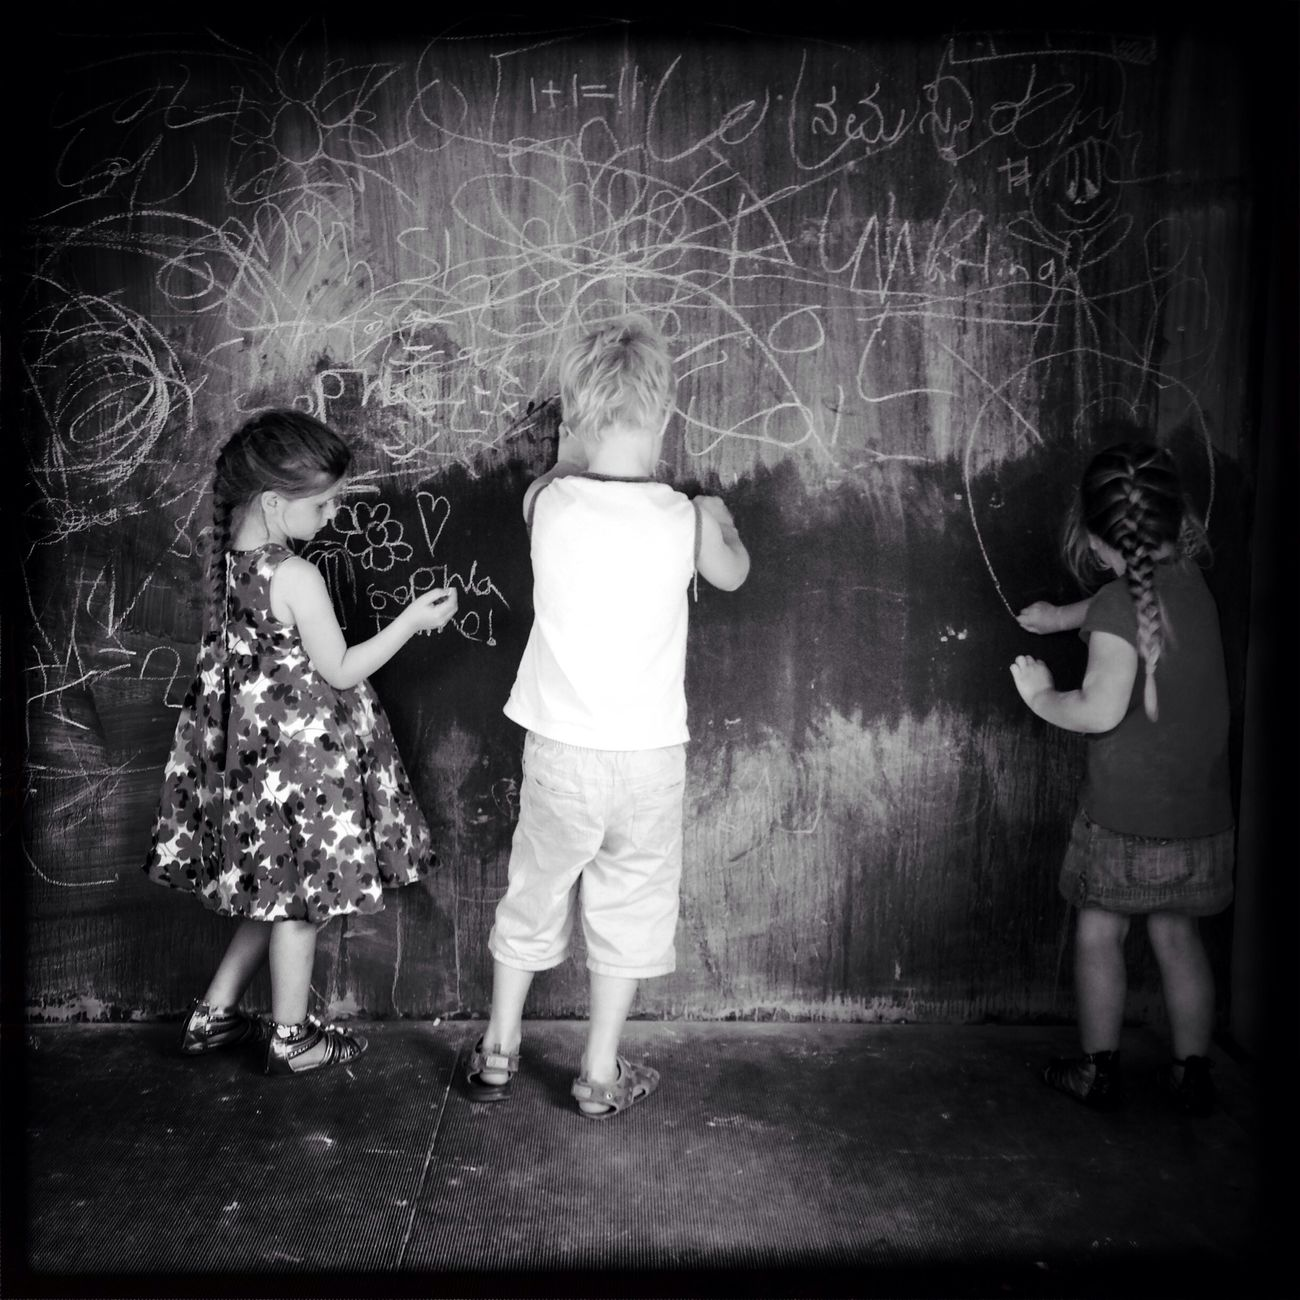 Chalk Stories The Moment - 2014 EyeEm Awards The Portraitist - 2014 EyeEm Awards The Storyteller - 2014 Eyeem Awards